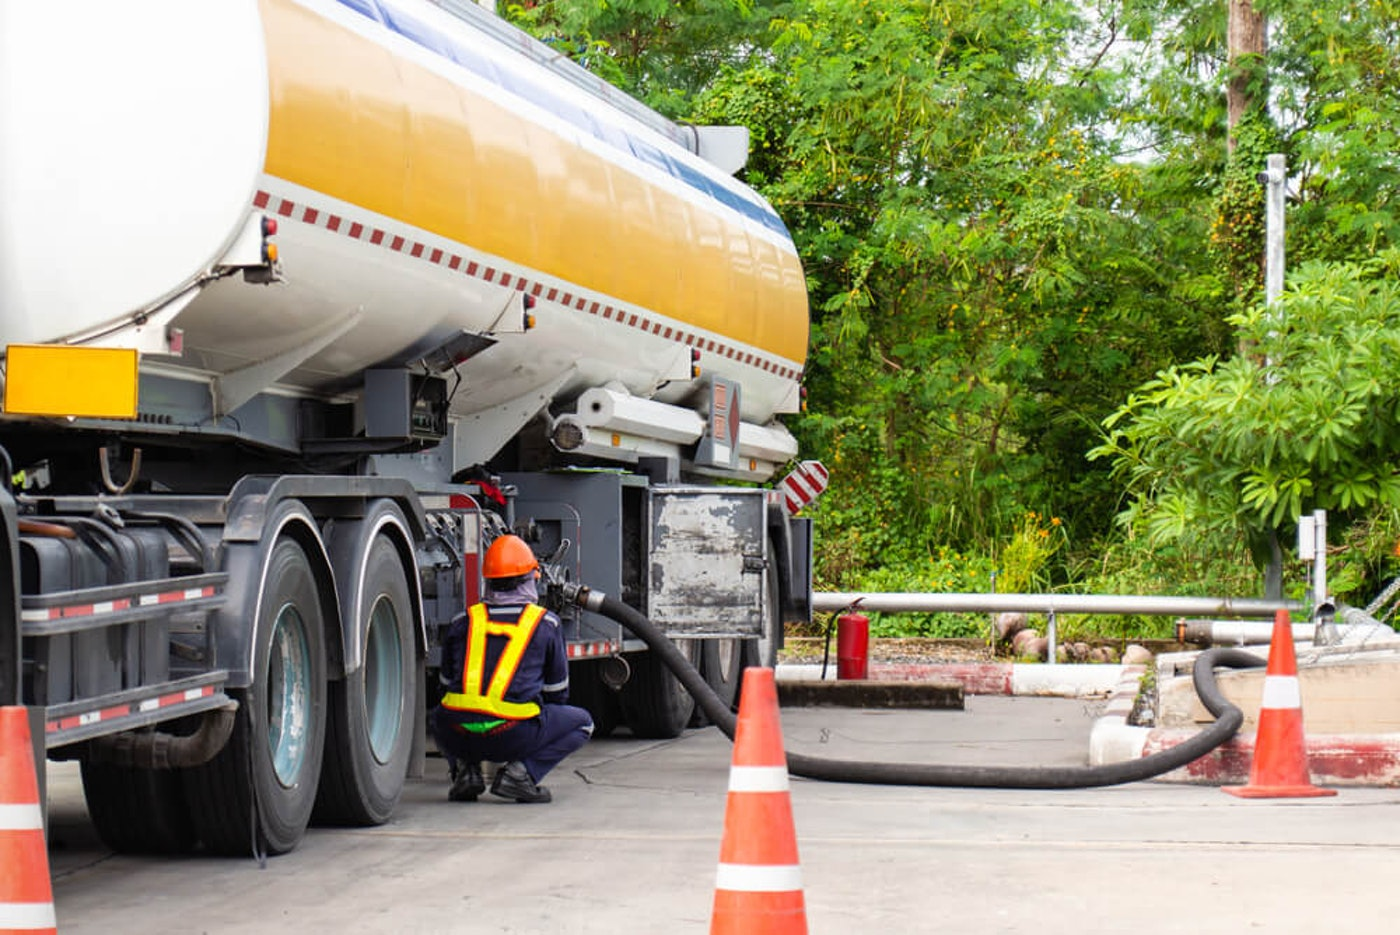 Fueling,Up,A,Freight,Transport,Truck,fuel,Delivery,Tanker